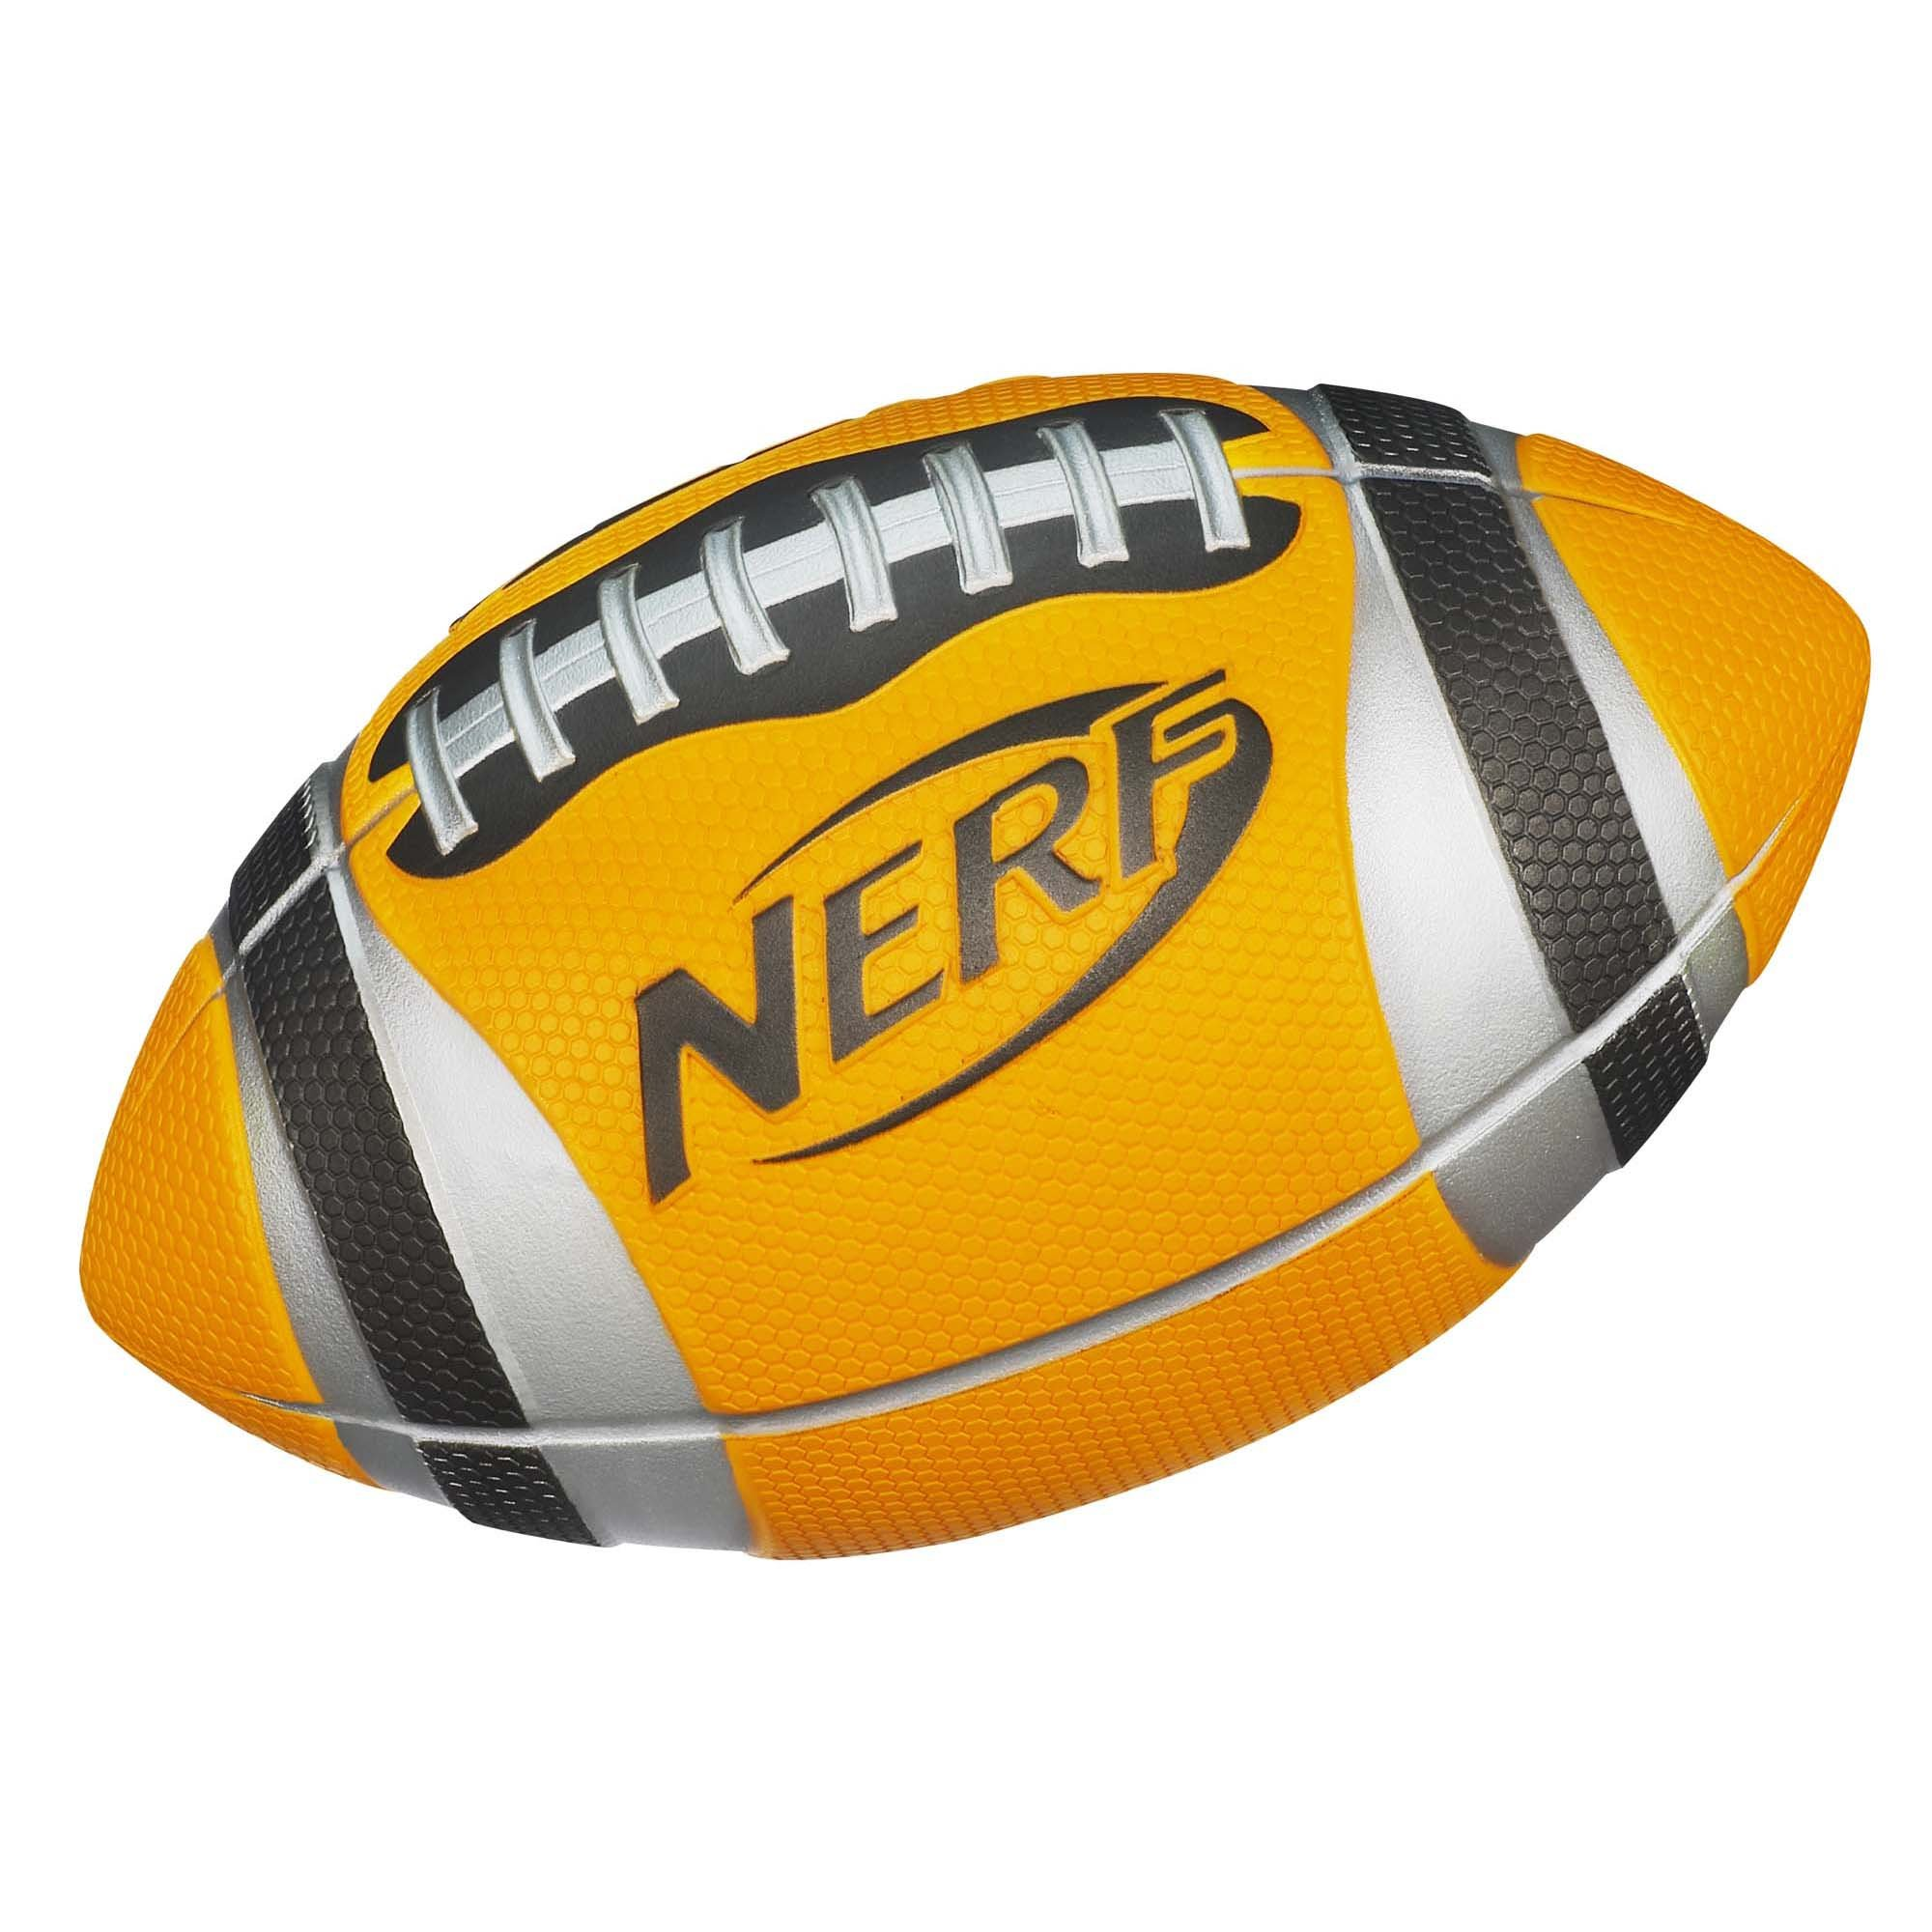 Nerf N-Sports Pro Grip Football - Orange by NERF